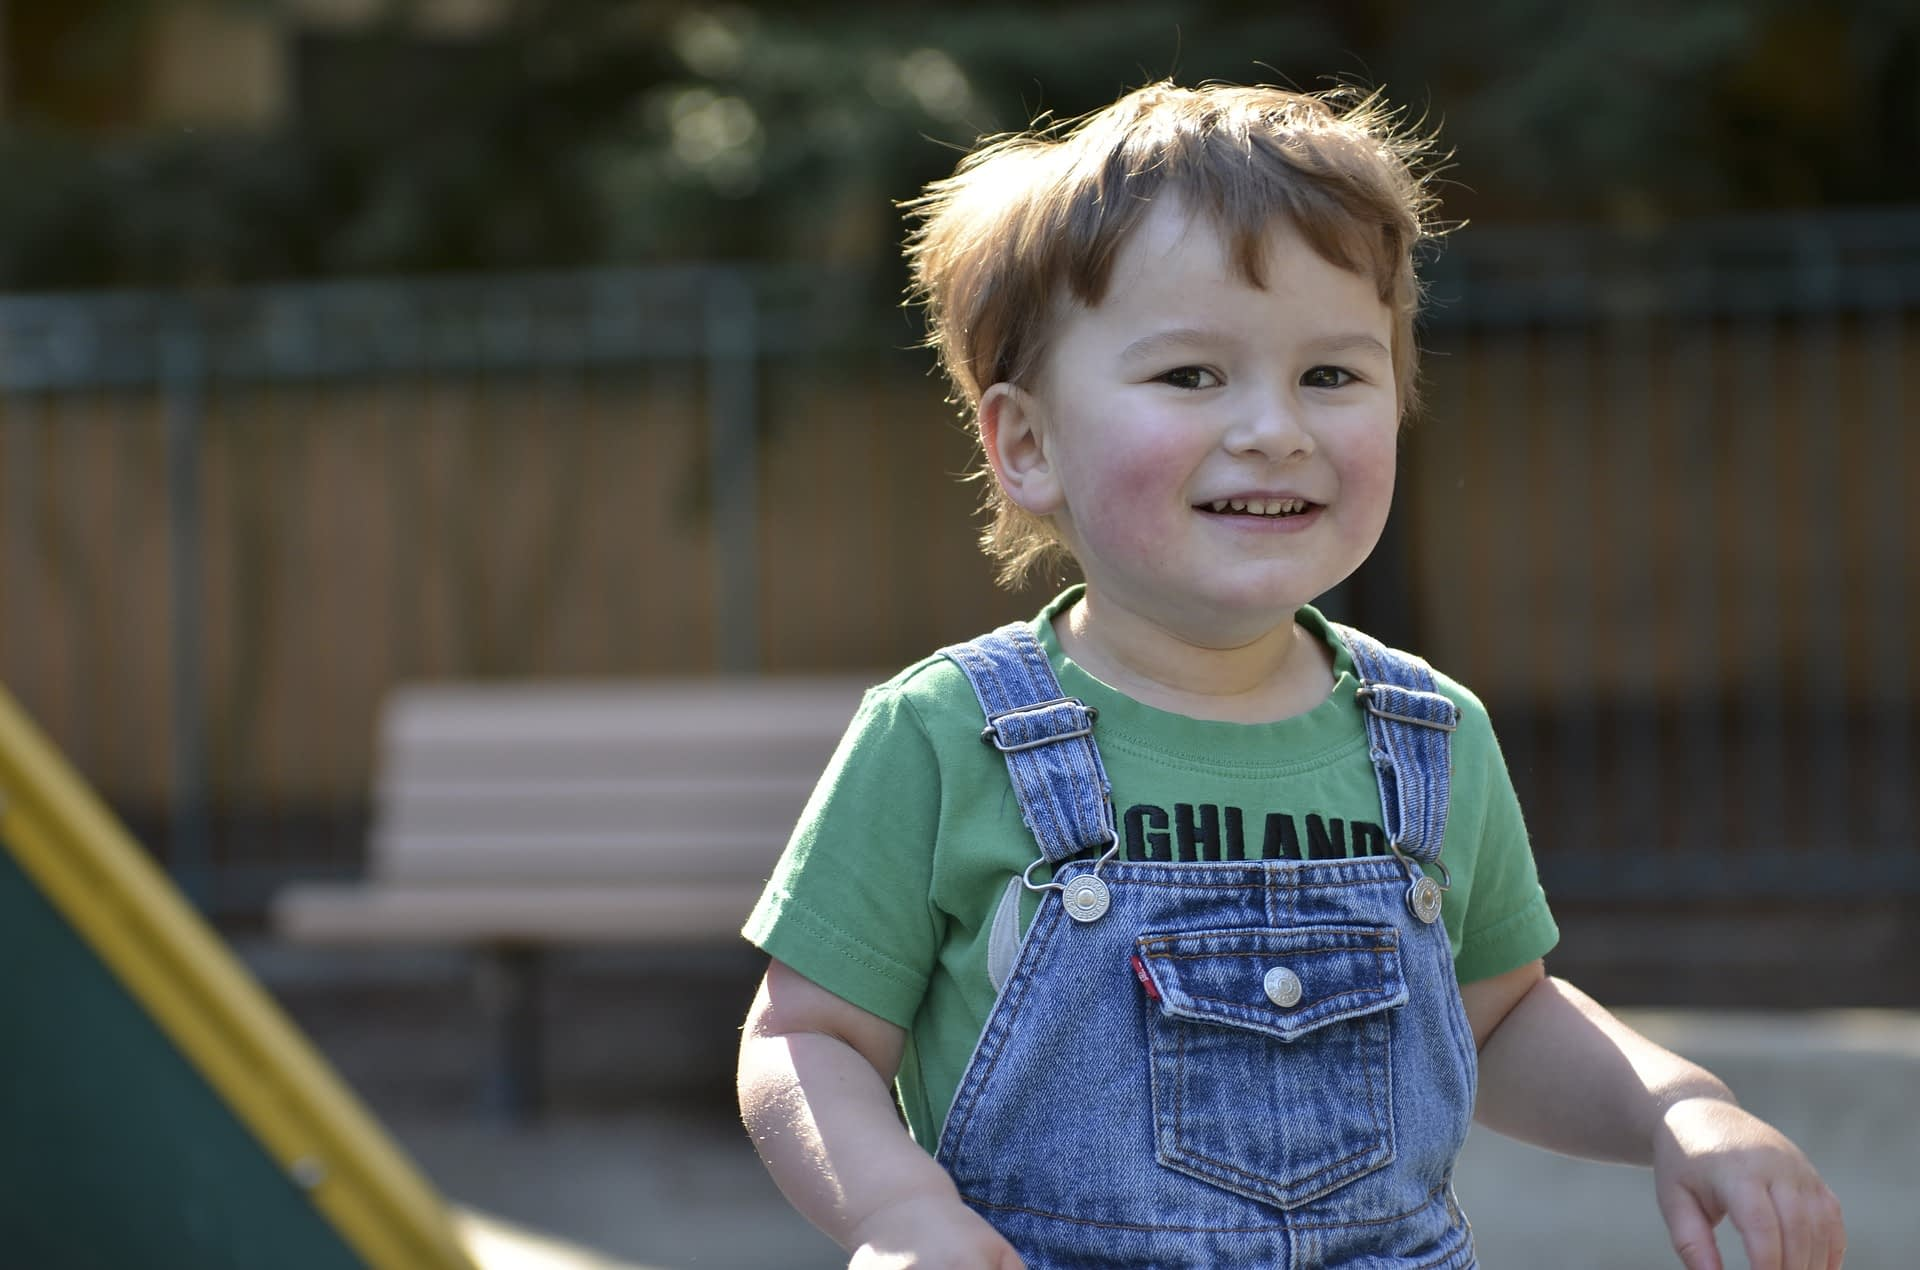 Tips to Parenting a Child with Autism